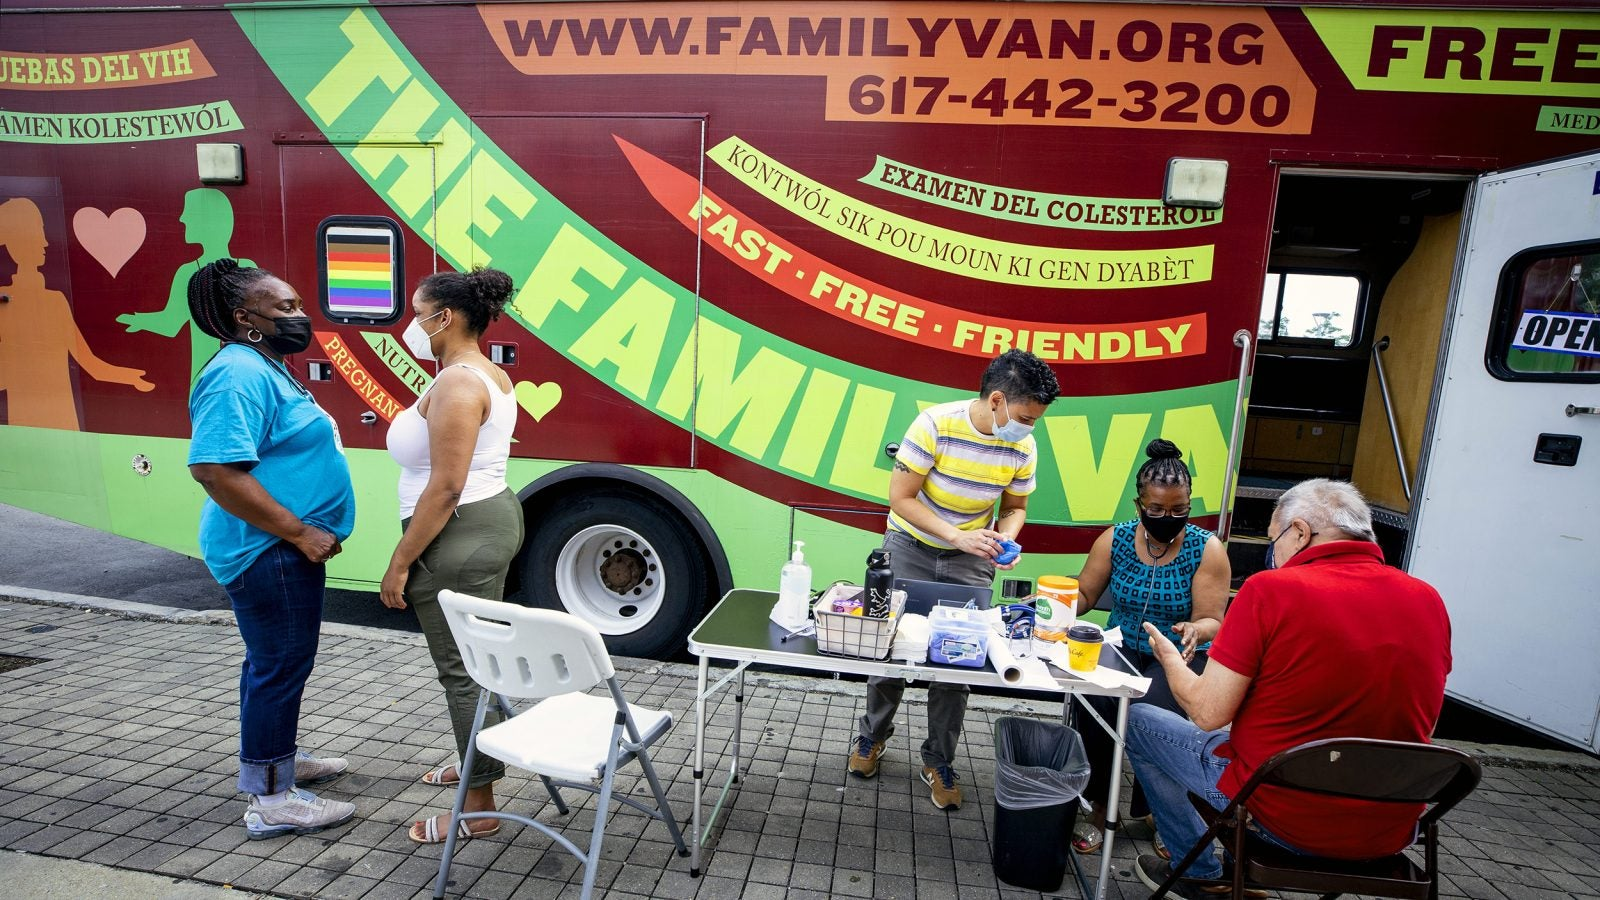 Harvard University's Family Van travels through the city of Boston providing basic medical attention to underserved communities in the Metro-Boston area.